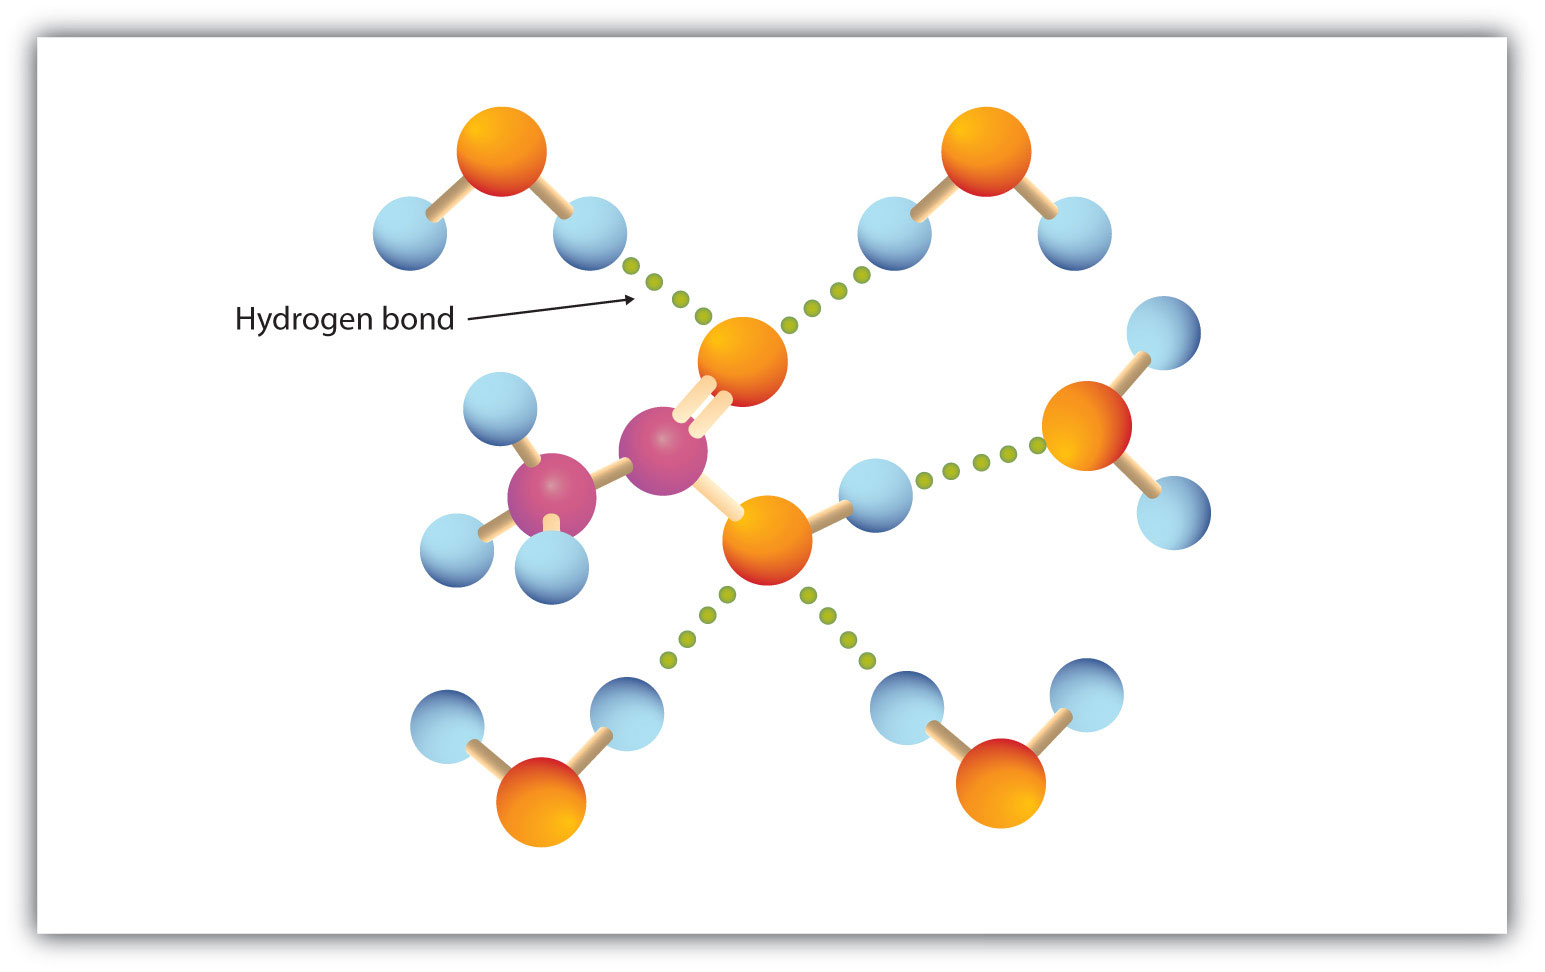 Ball-and-Stick model of Hydrogen bonding between Oxygen attached to Carbon by double bonds in the Carboxyl group and Hydrogen from surrounding water.